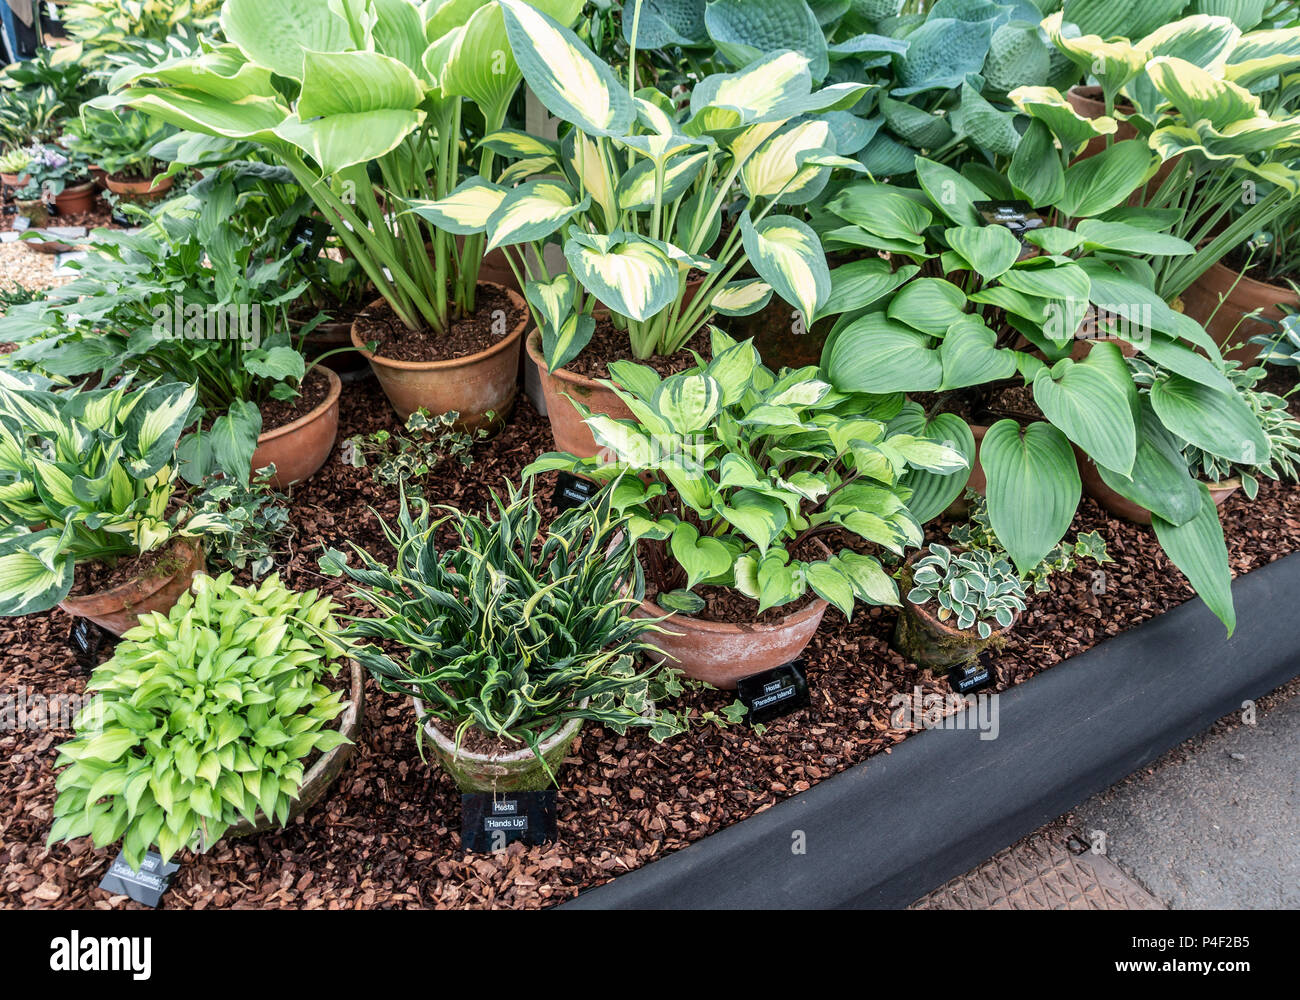 Part of a gold medal winning display of a variety of hostas, including miniature cultivars: Gardeners' World Live, NEC, Birmingham, England, UK - Stock Image